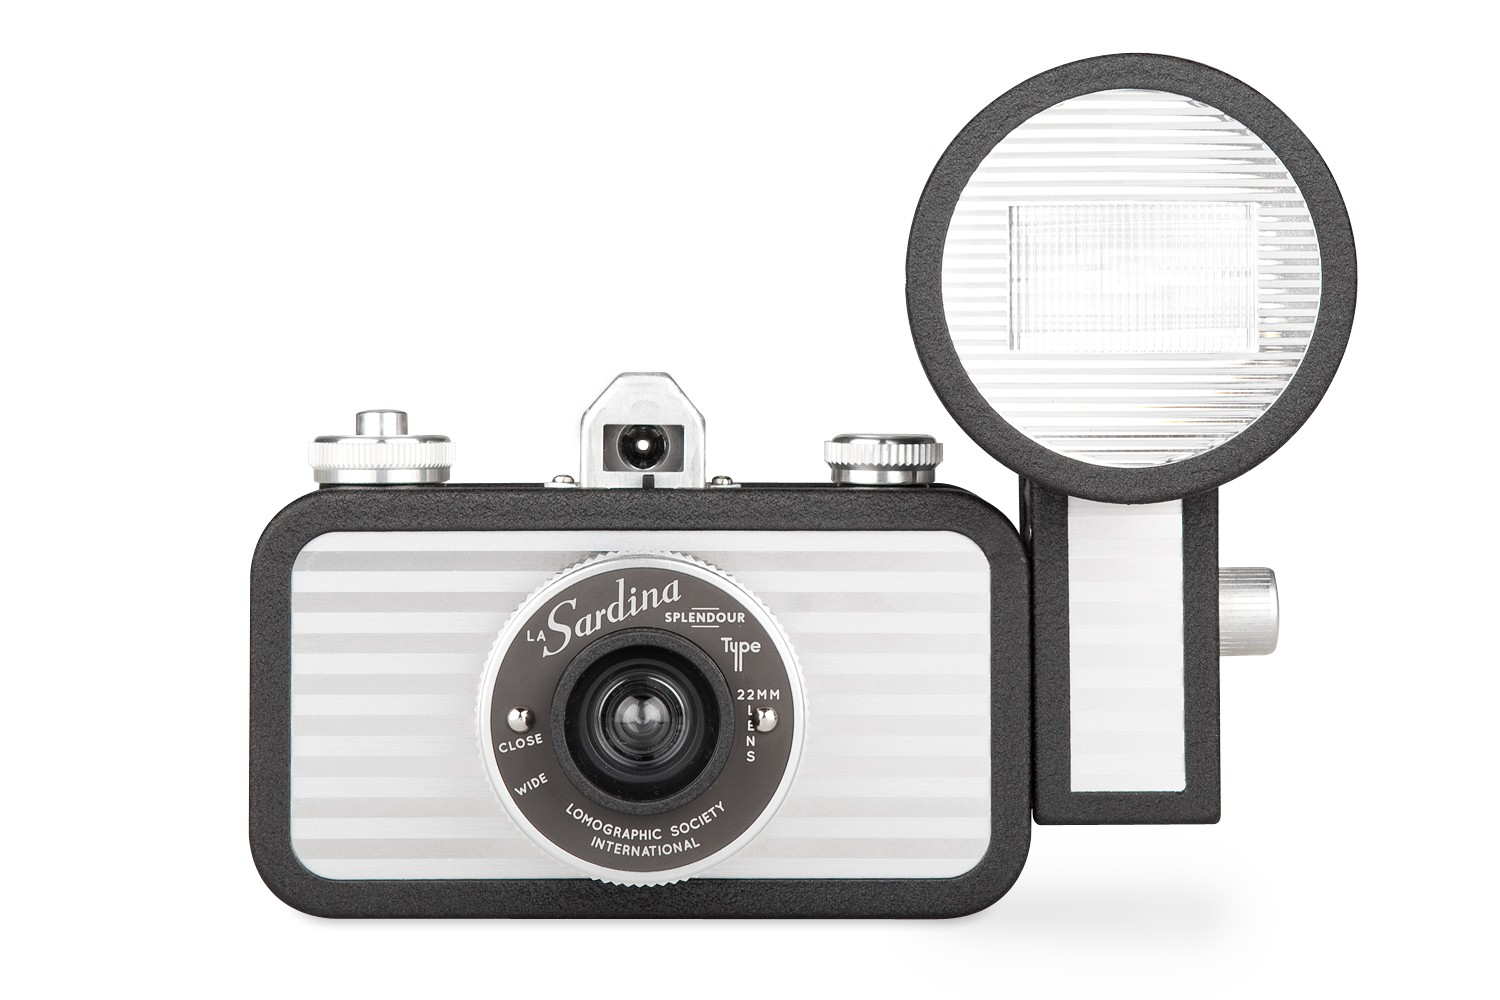 La Sardina and Flash Splendour